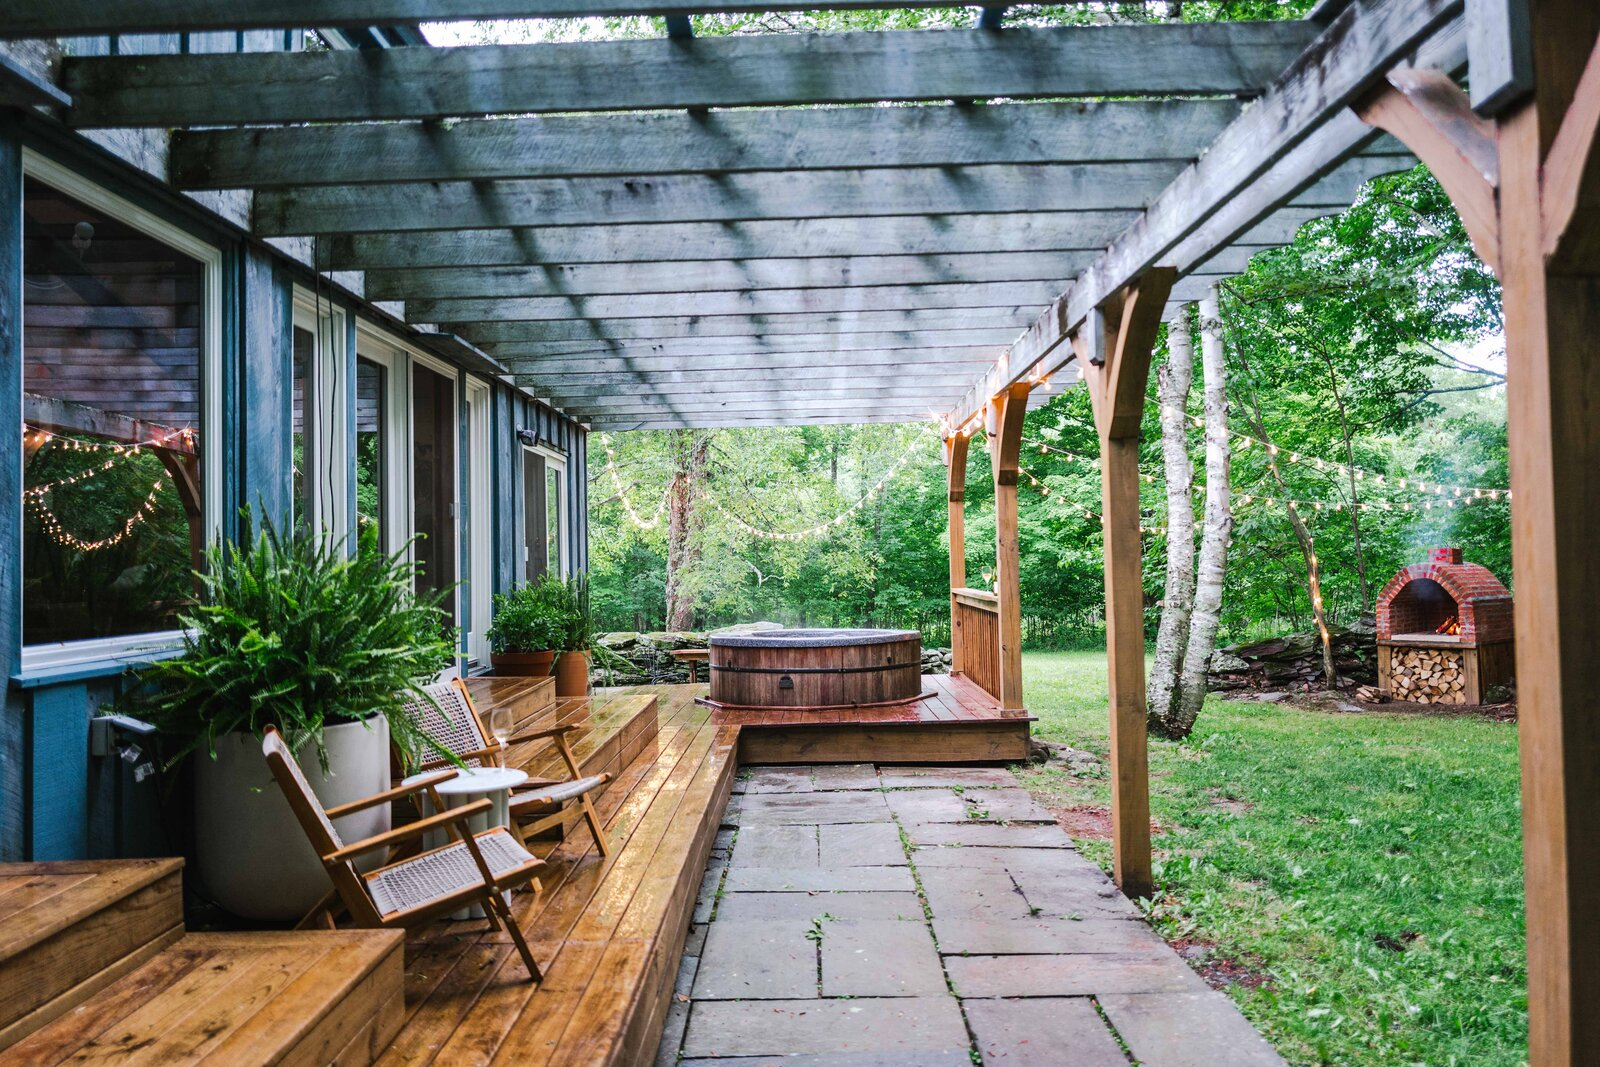 The Hunter Barnhouse by Danielle and Ely Franko deck and hot tub